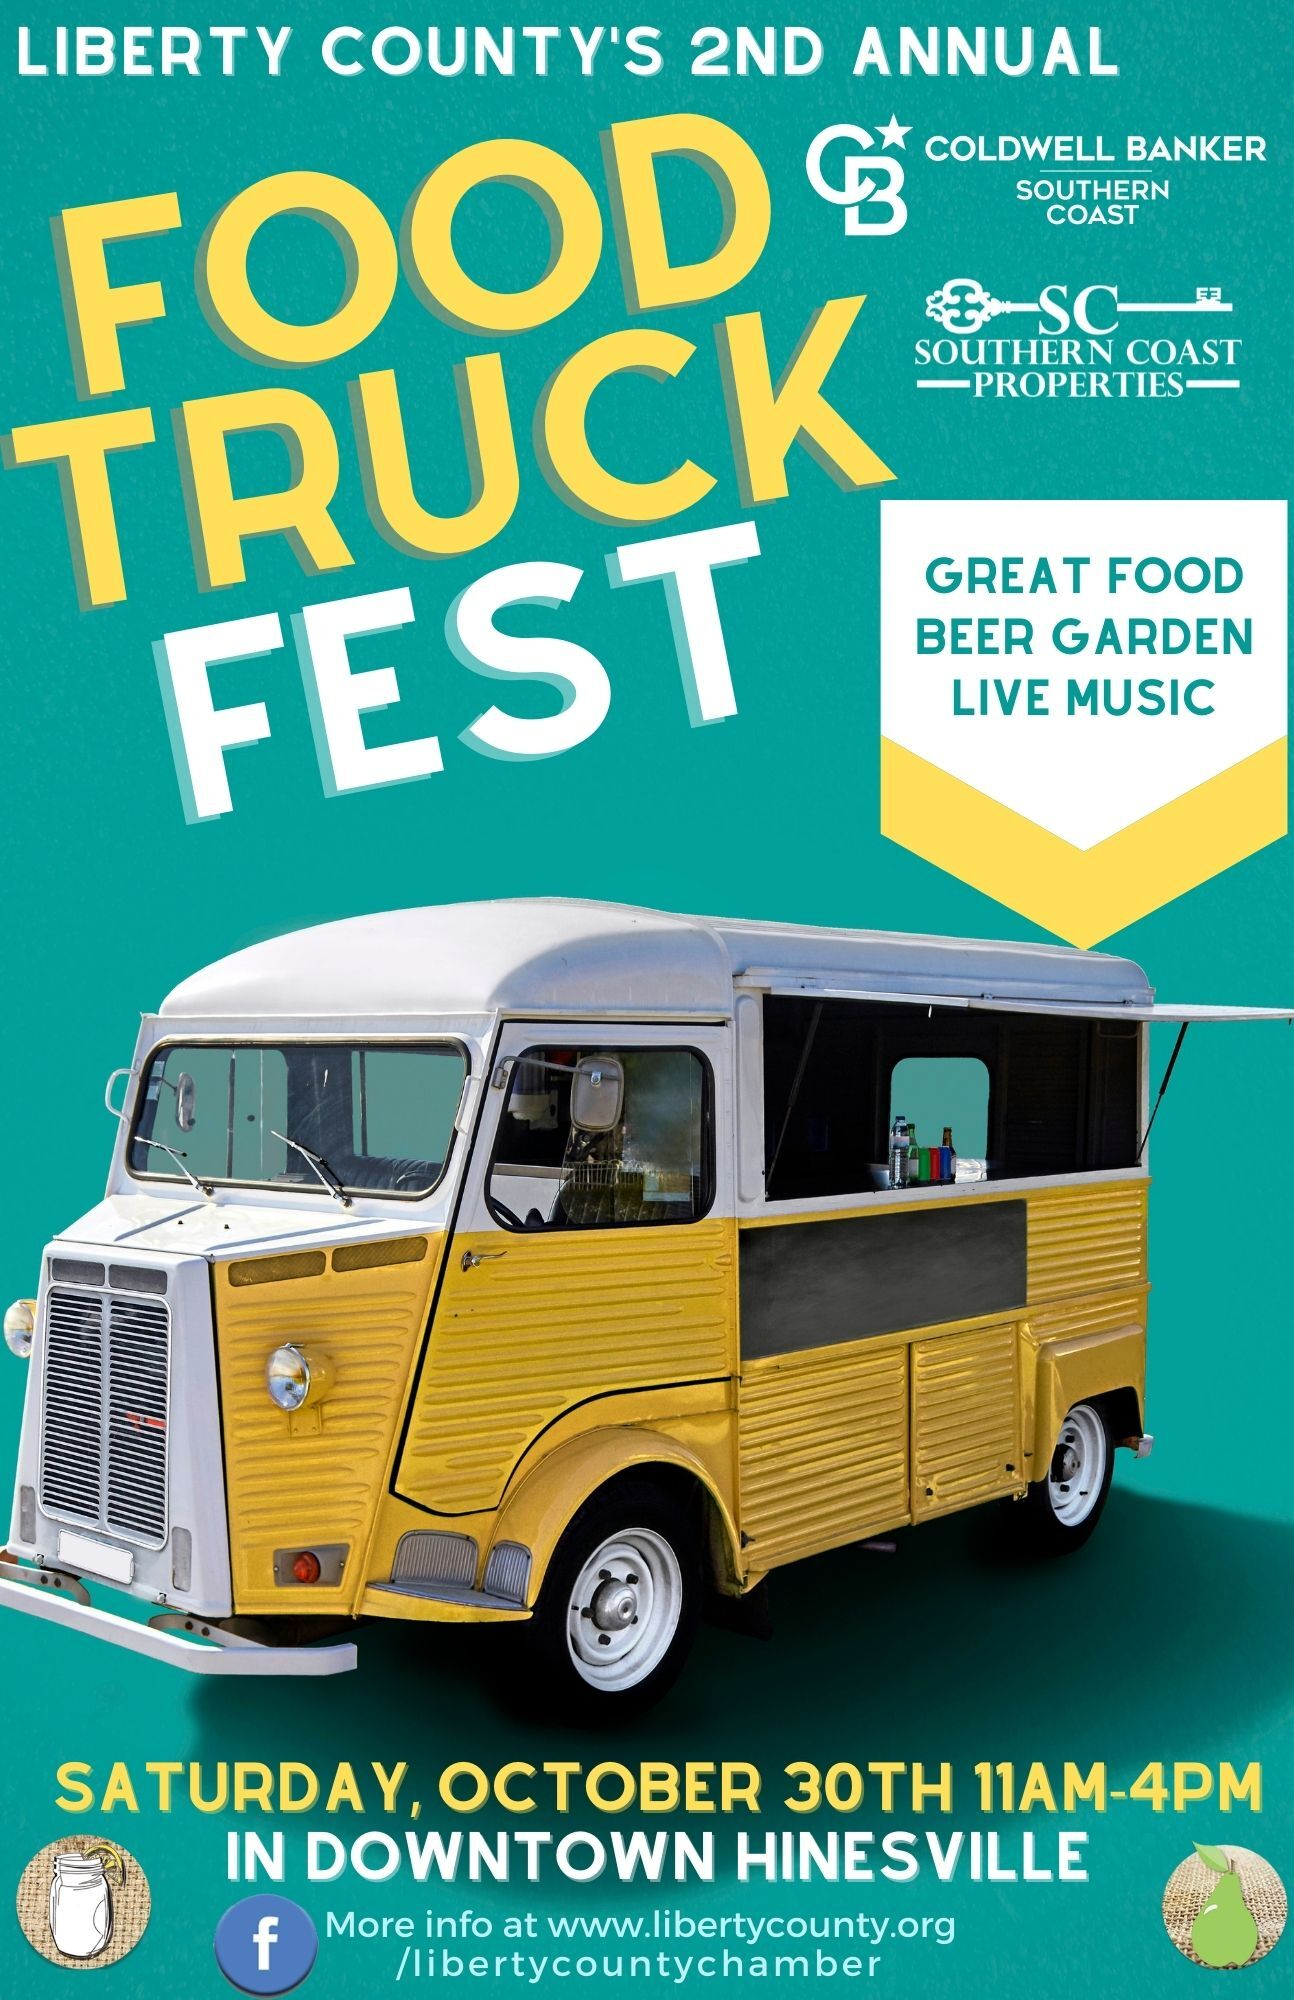 2nd Annual Liberty County Food Truck Festival